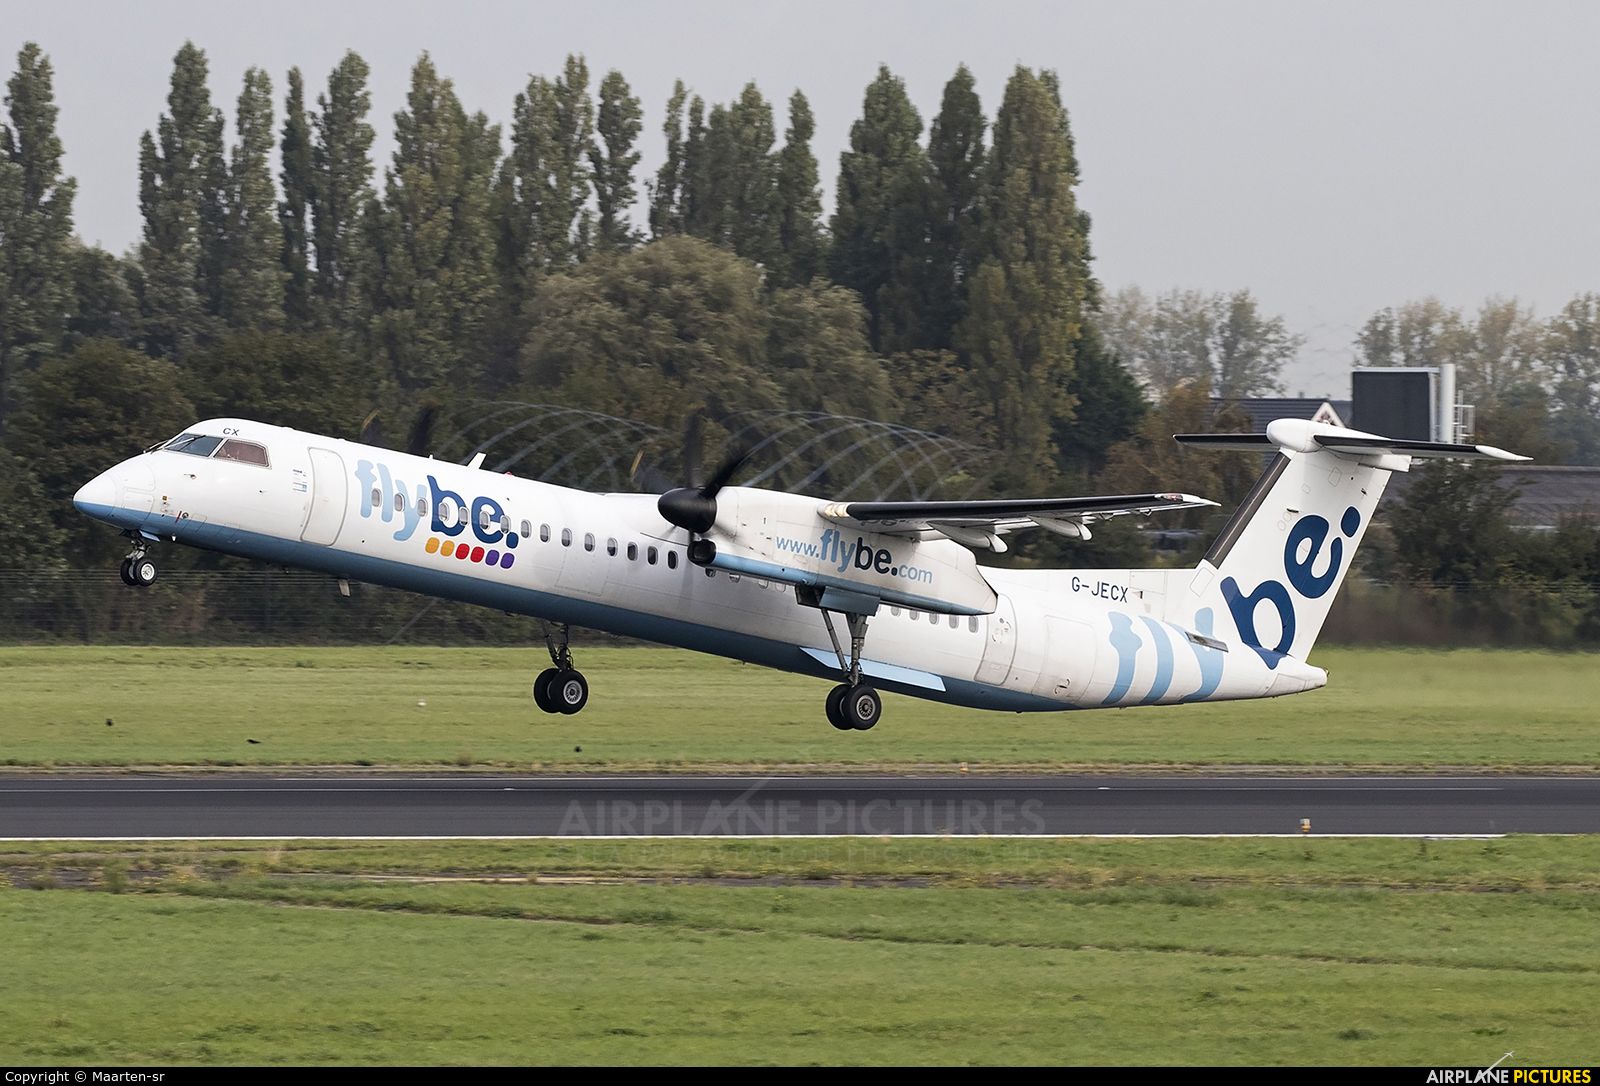 Flybe G-JECX aircraft at Rotterdam